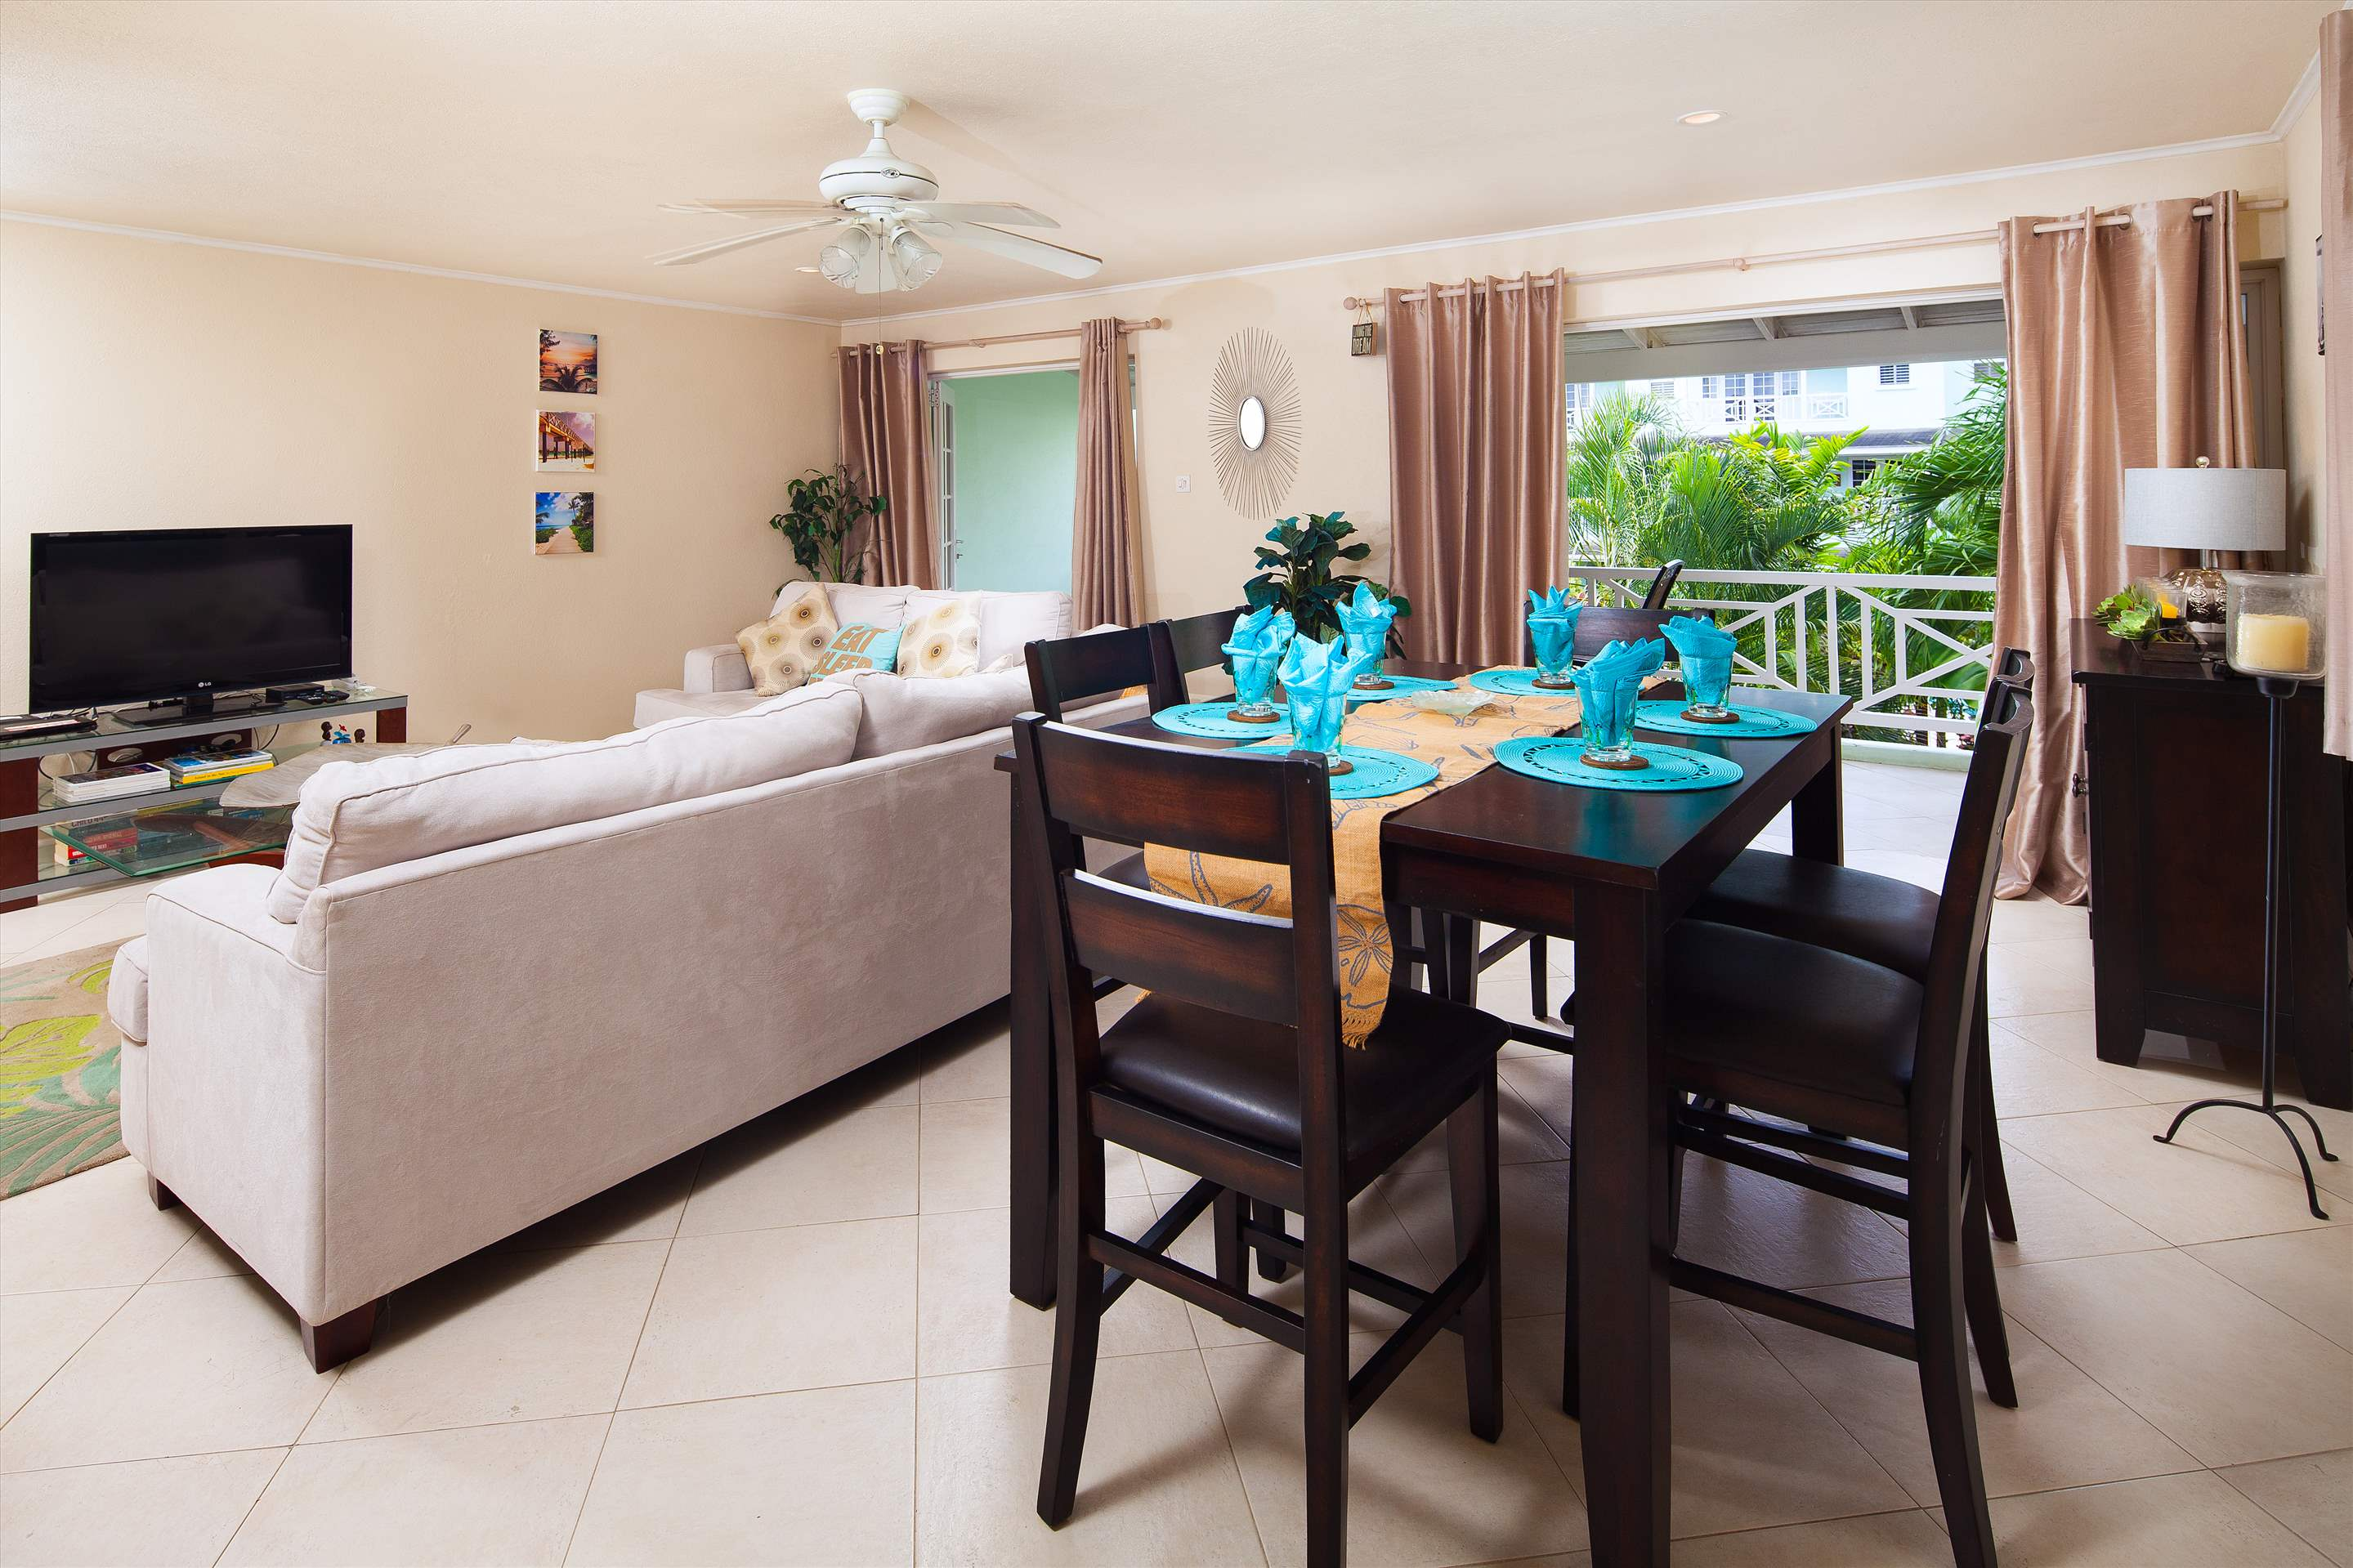 Margate Gardens 4, 2 bedroom, 2 bedroom apartment in St. Lawrence Gap & South Coast, Barbados Photo #4